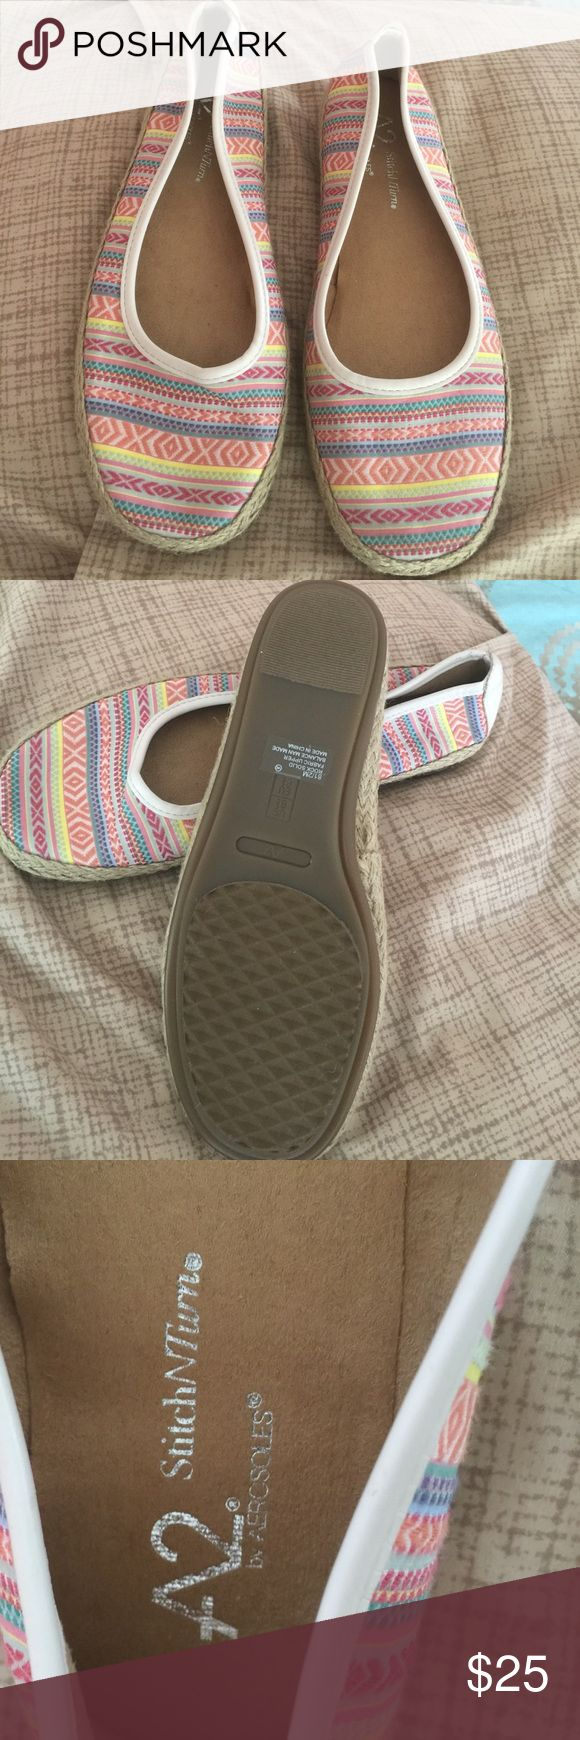 A2 shoes by aerosoles Tribal shoes new never used no tags AEROSOLES Shoes Flats & Loafers